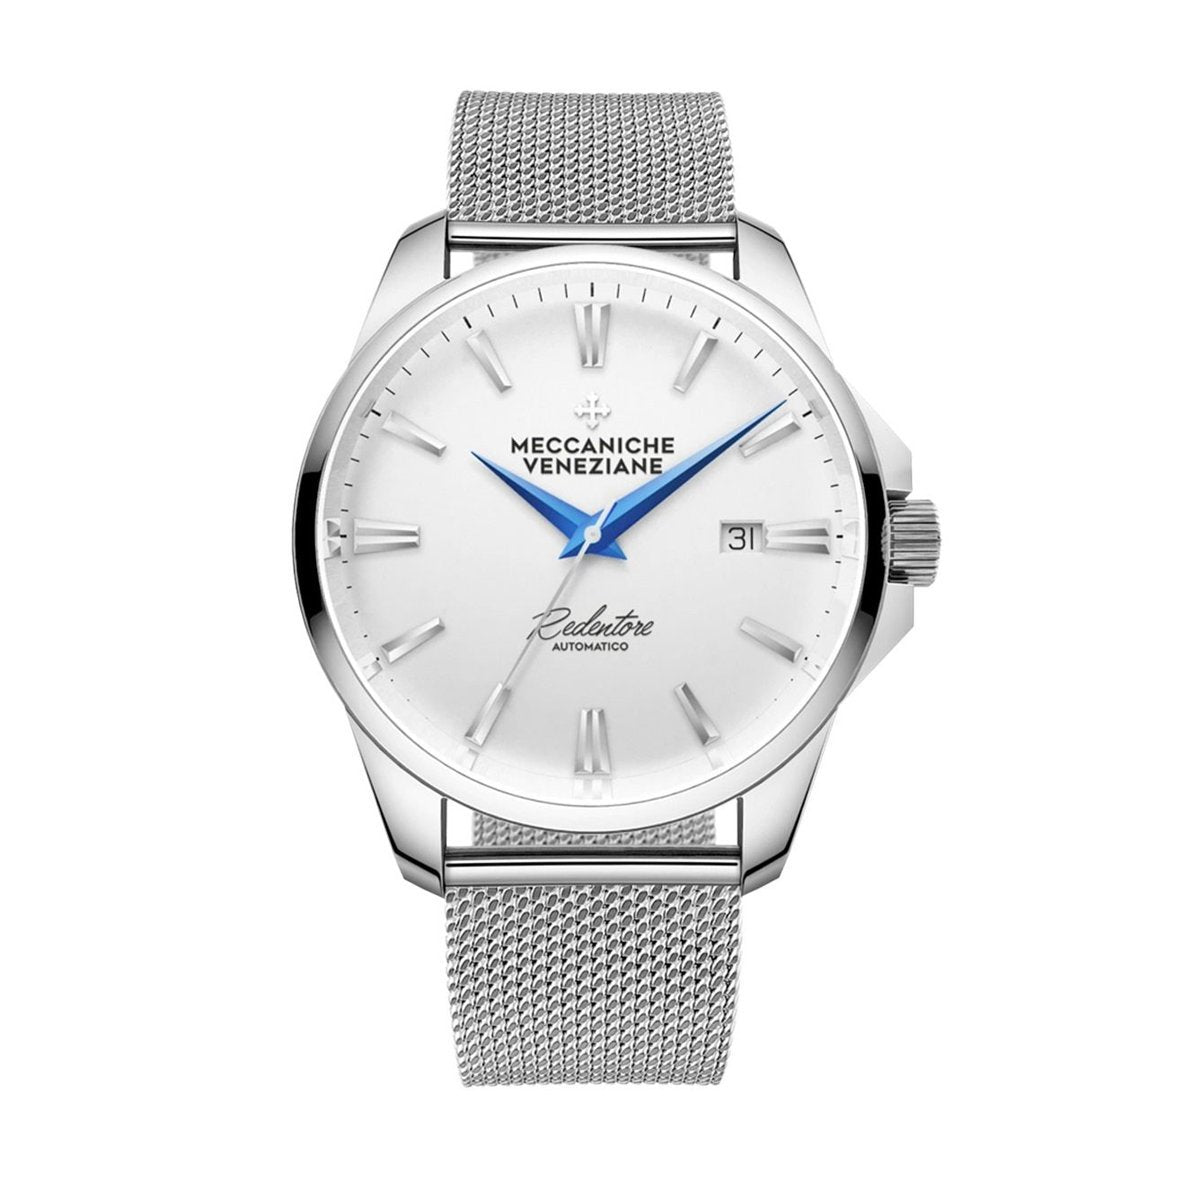 Meccaniche Veneziane Redentore 4.0 Watch Ghiaccio White - Watches & Crystals